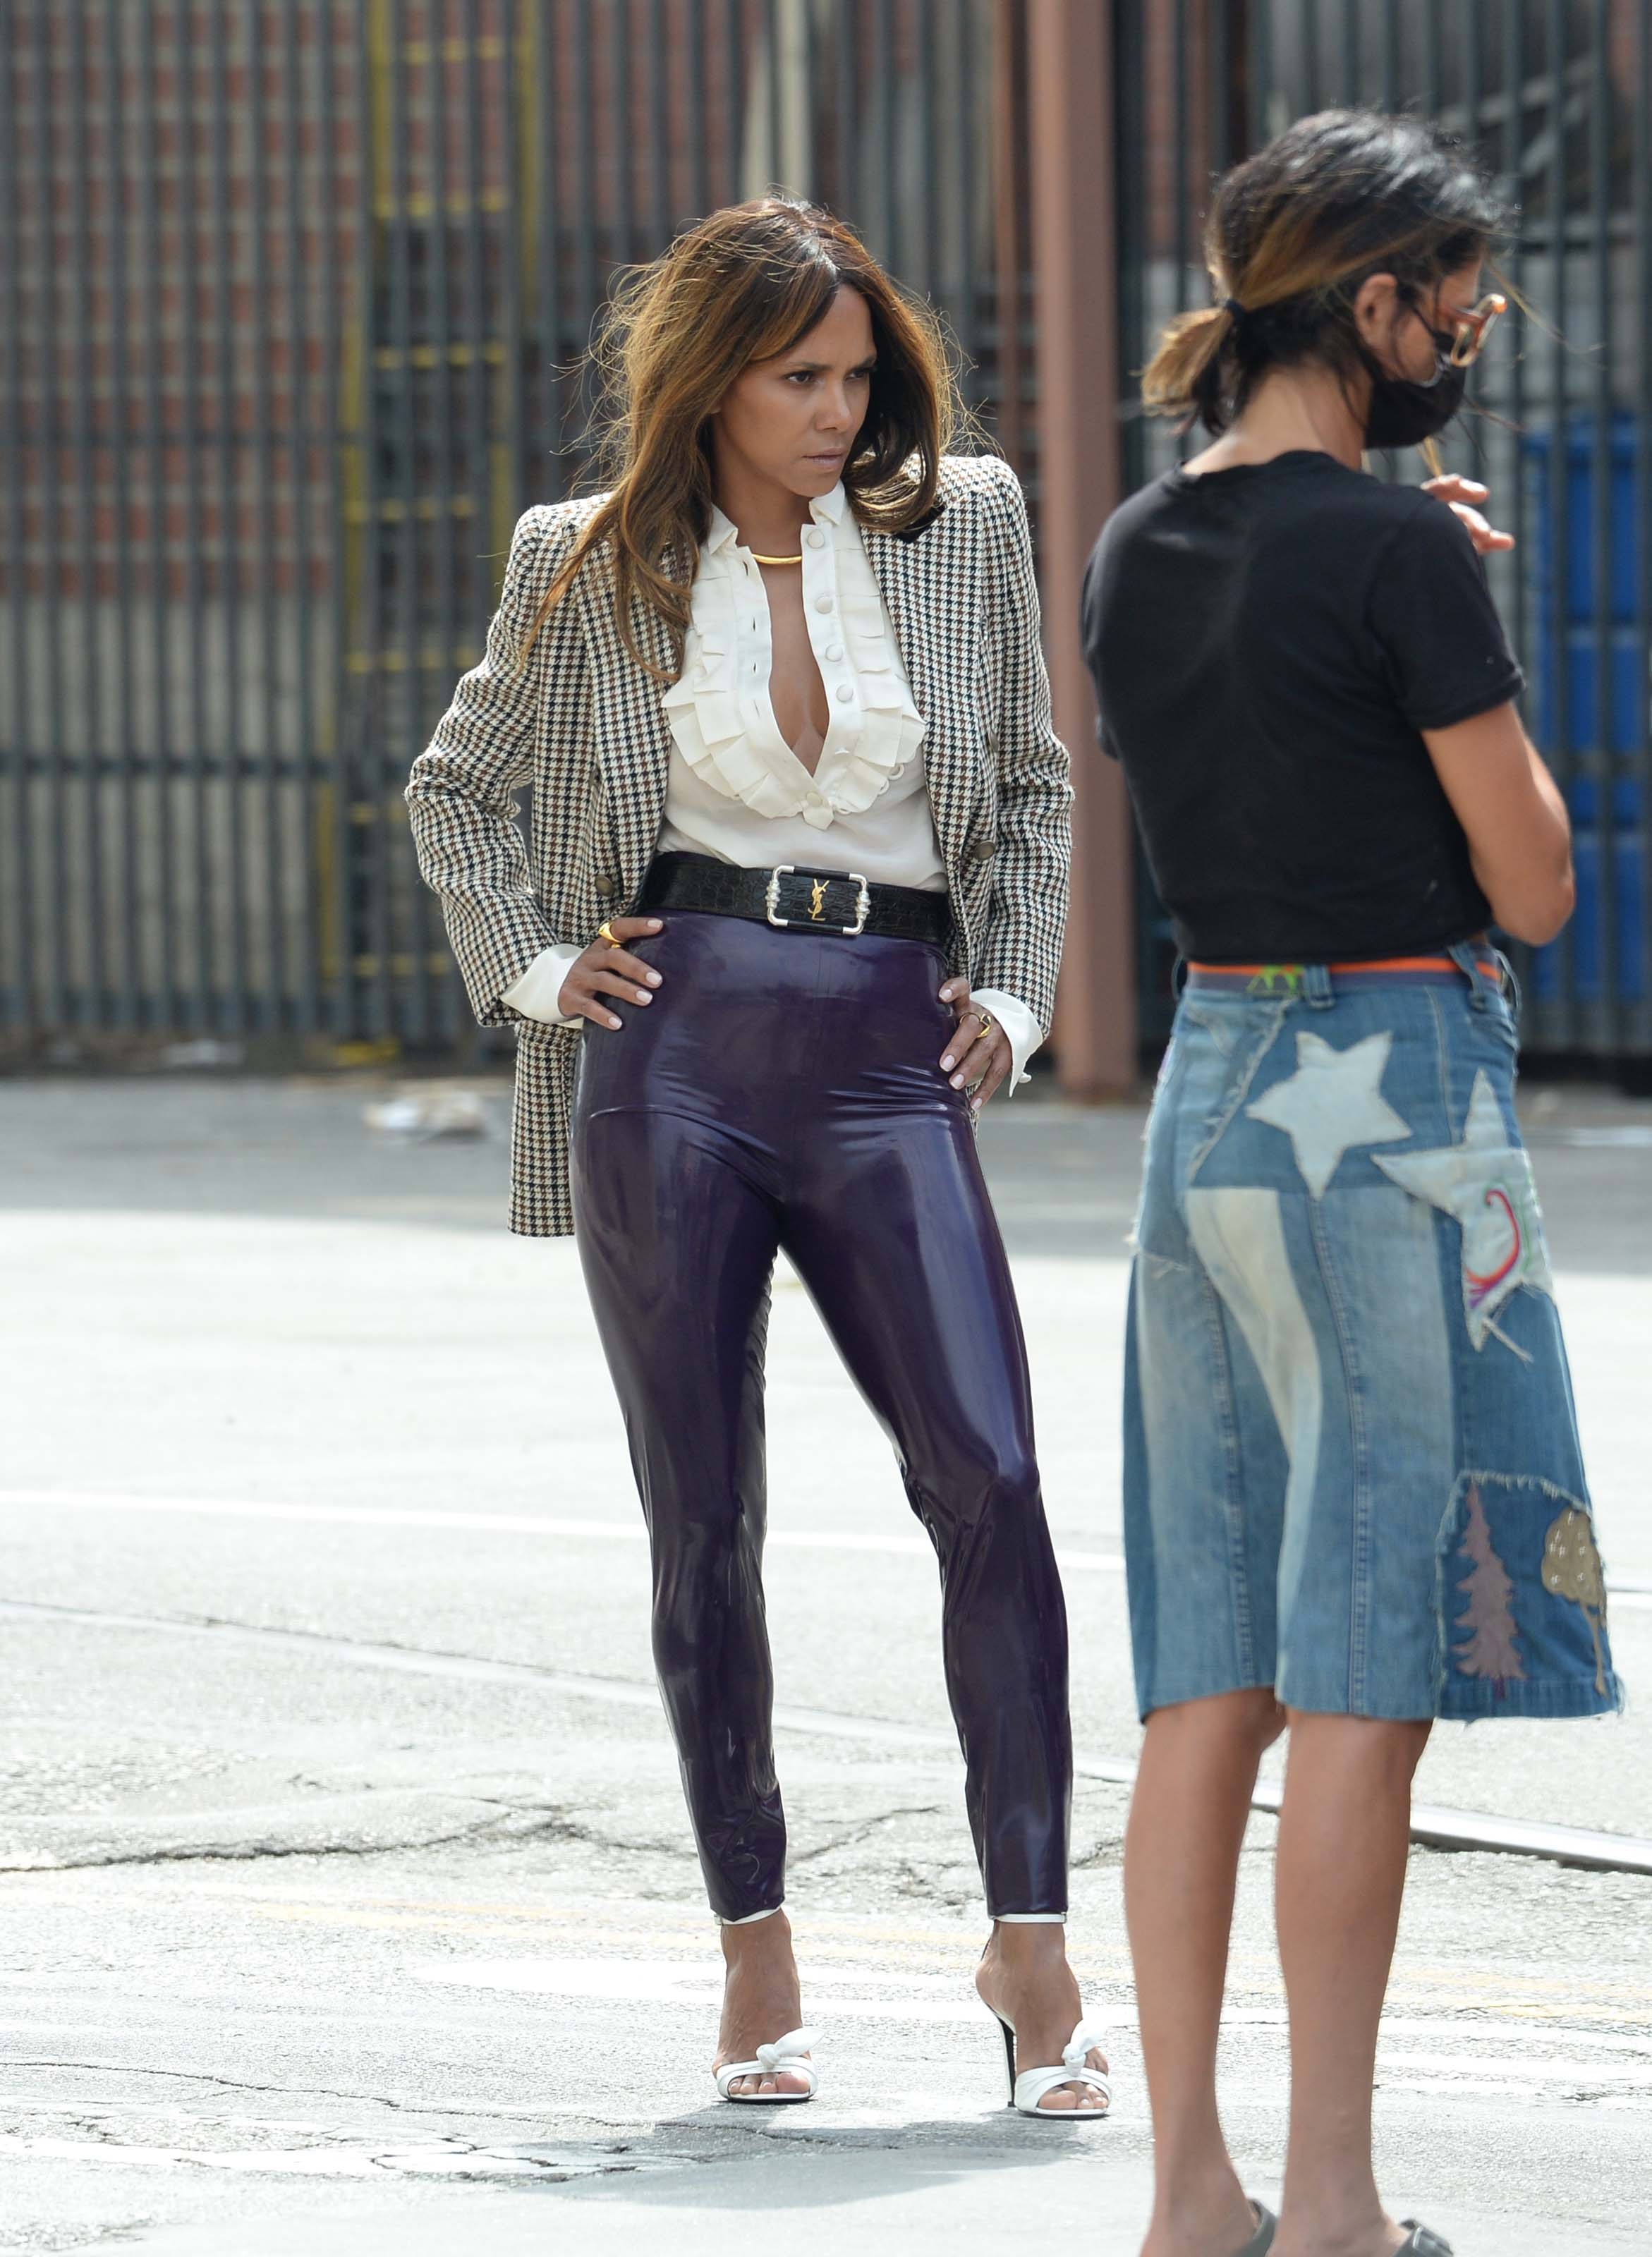 Halle Berry doing a photoshoot for Variety Magazine